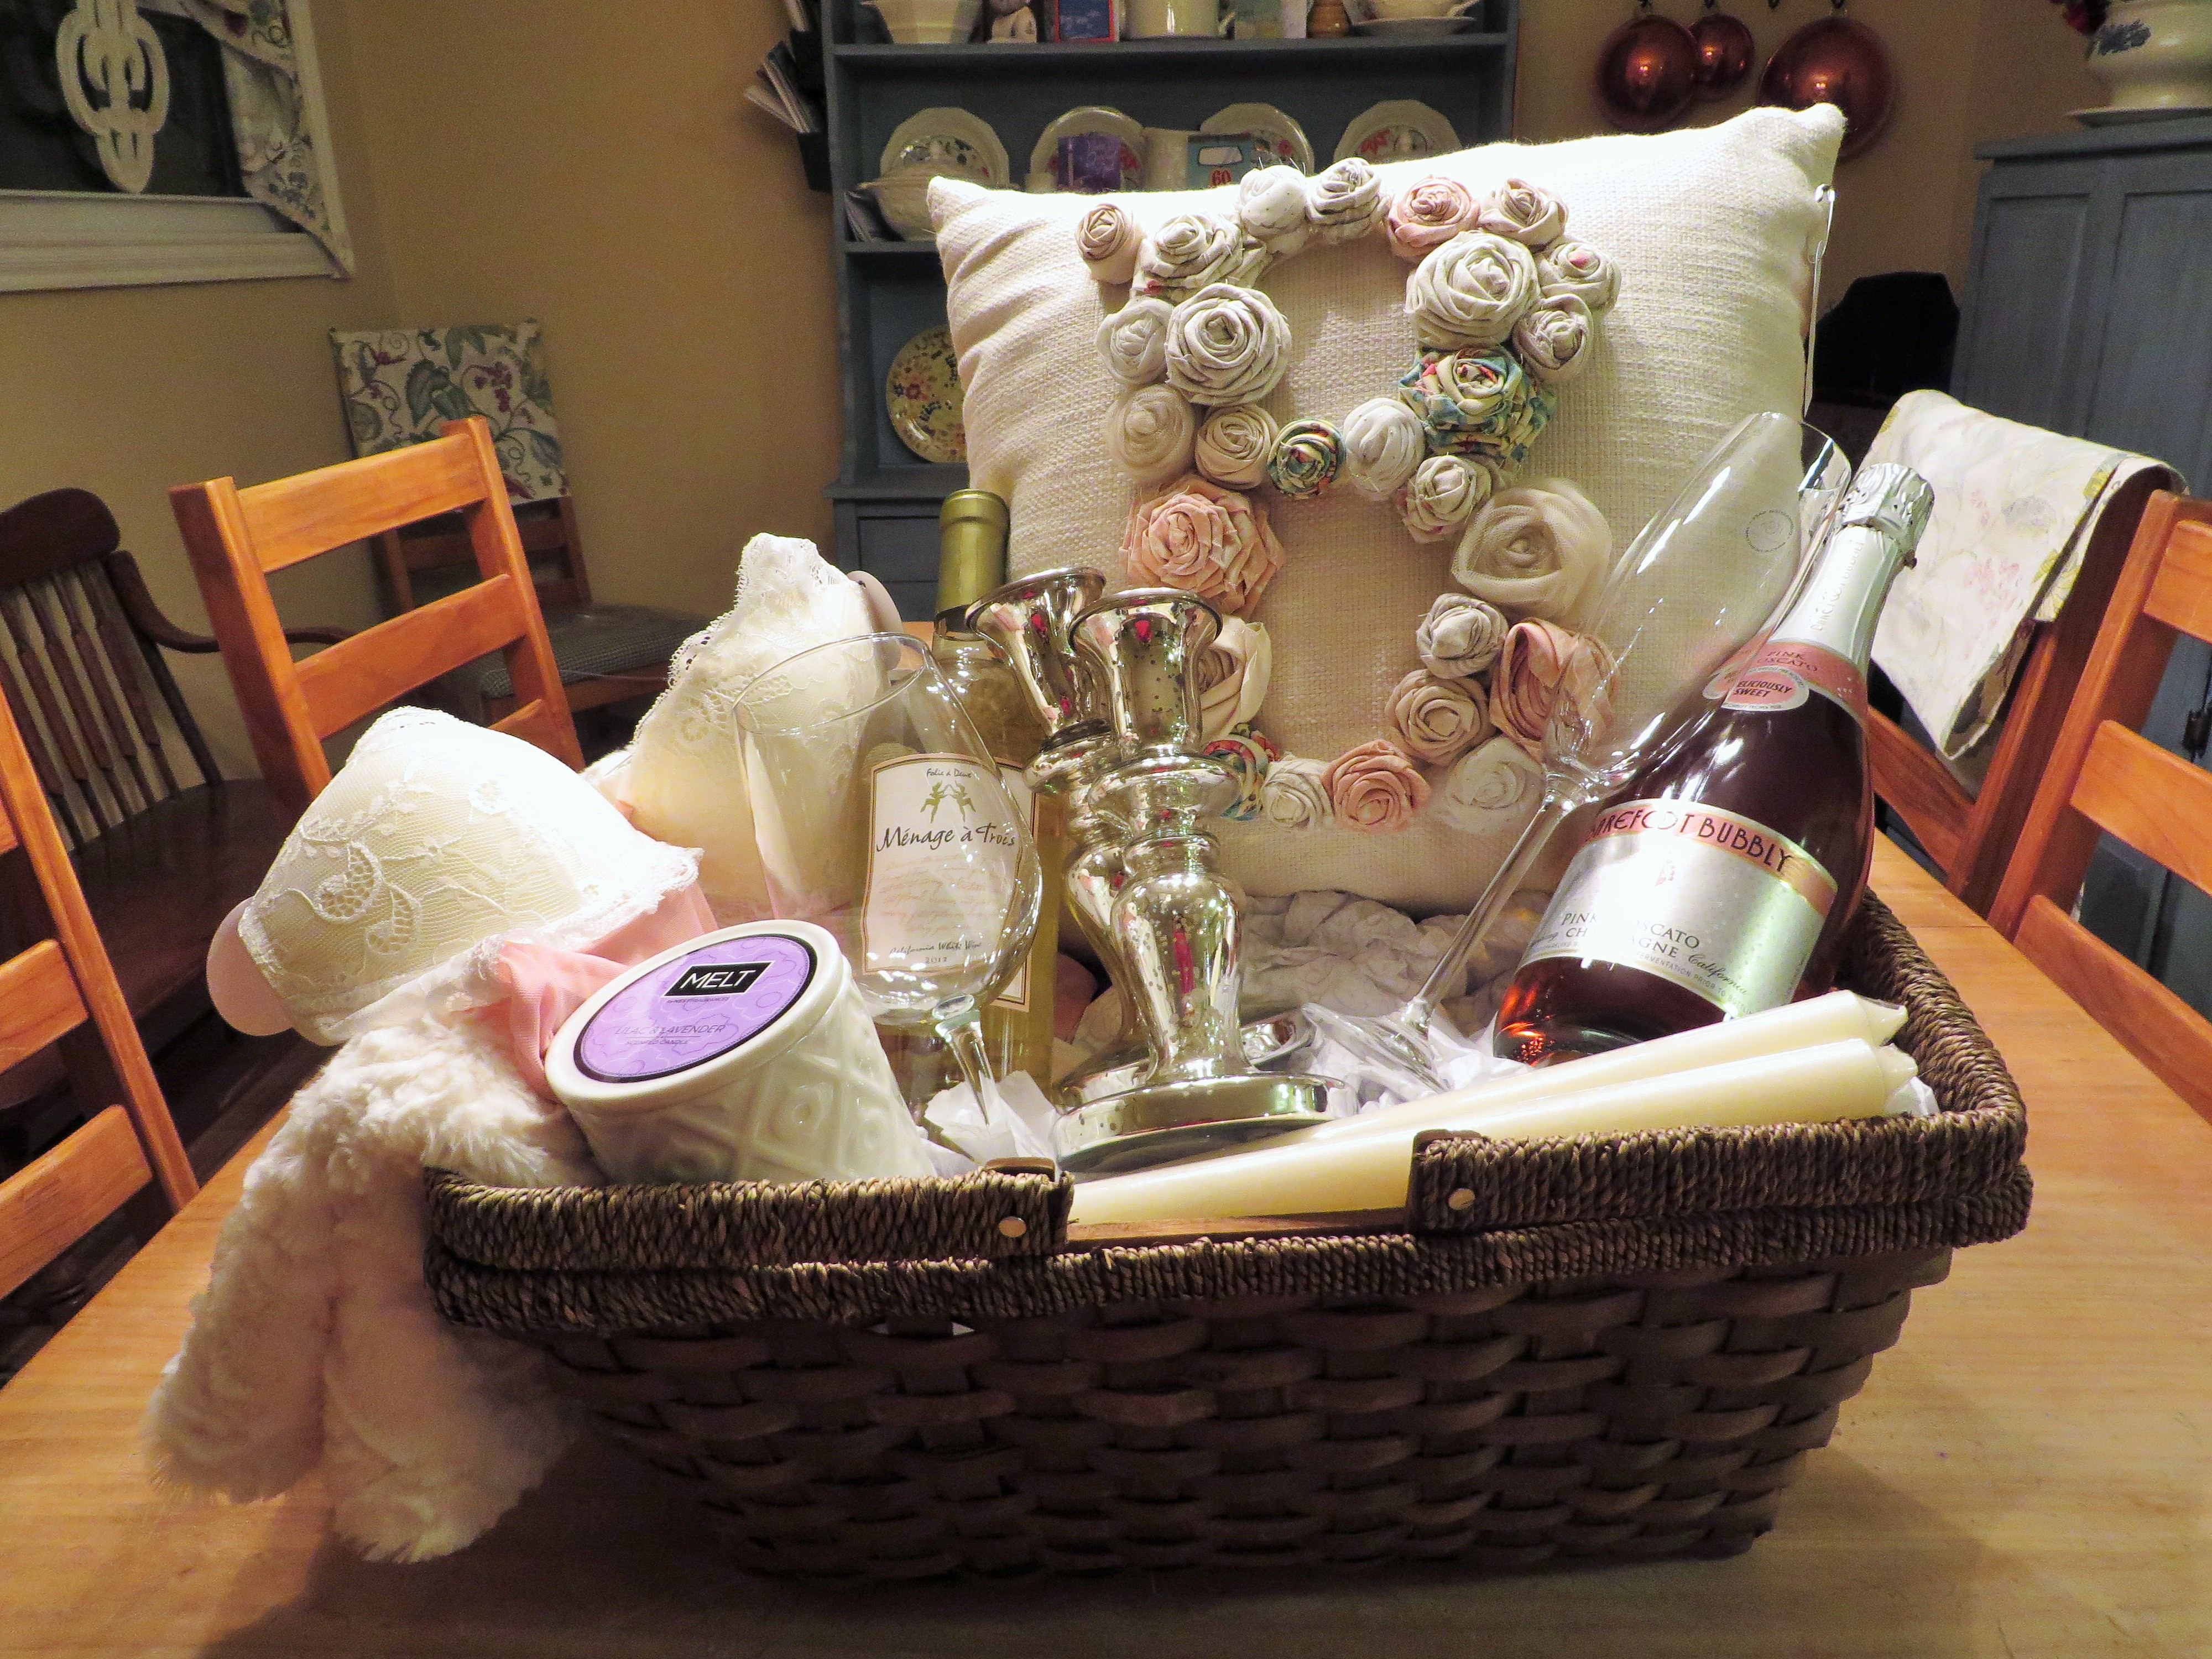 Best ideas about Wedding Gift Basket Ideas . Save or Pin Bridal Shower Gift Basket Now.